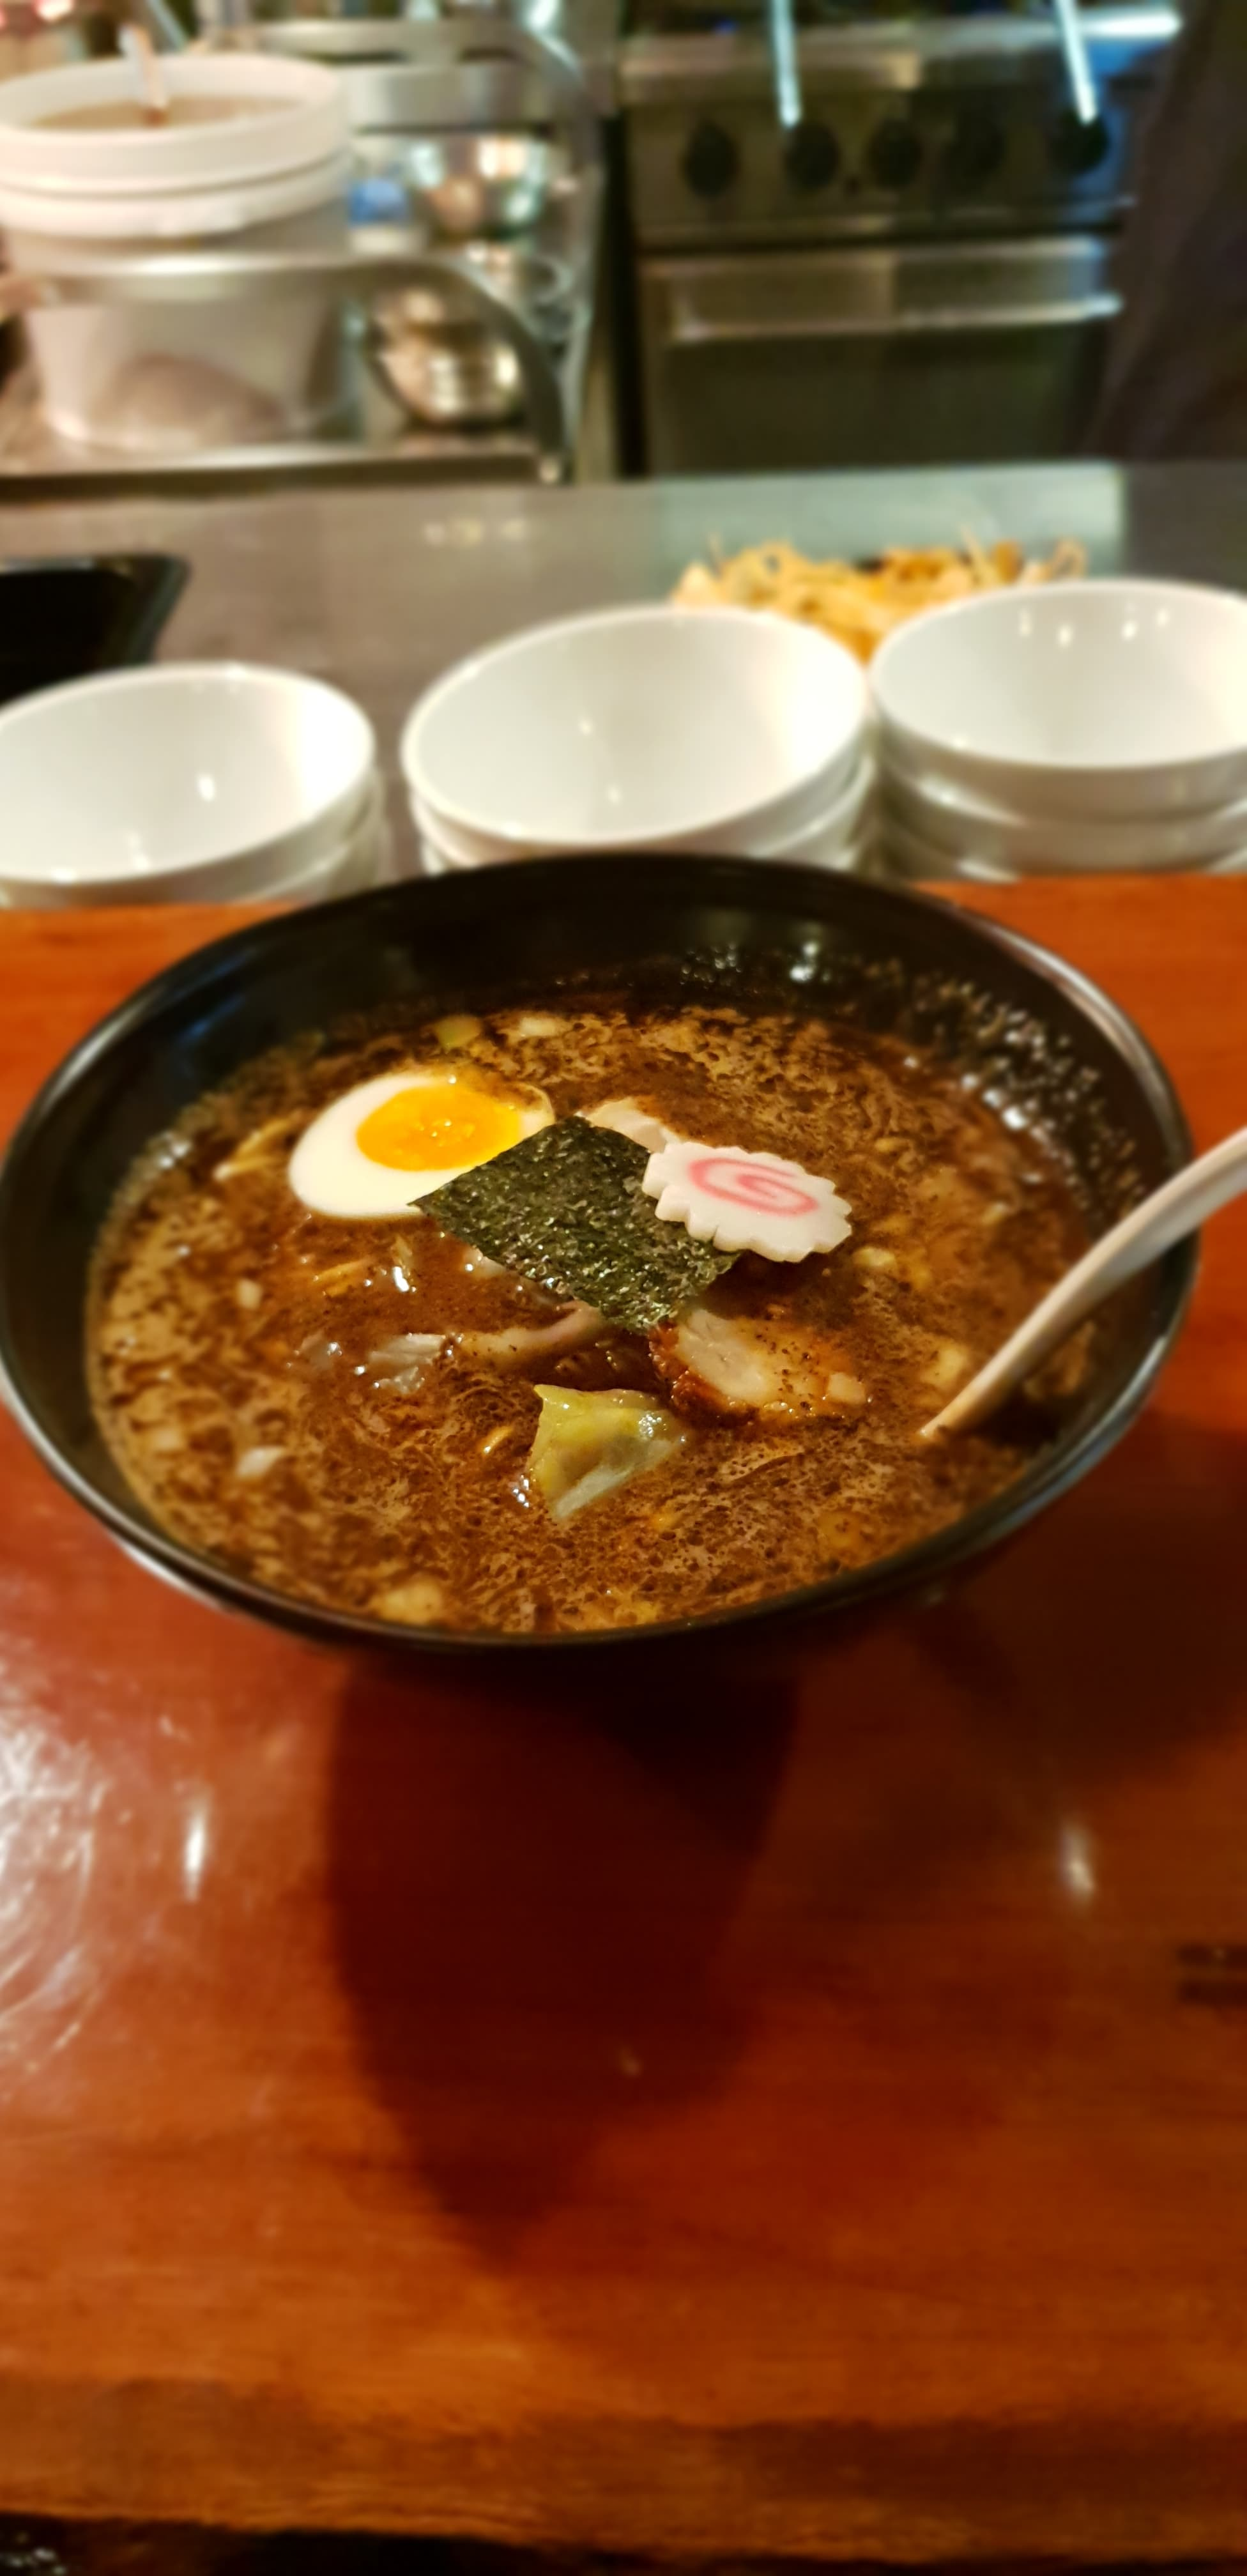 Burnt miso ramen for the win